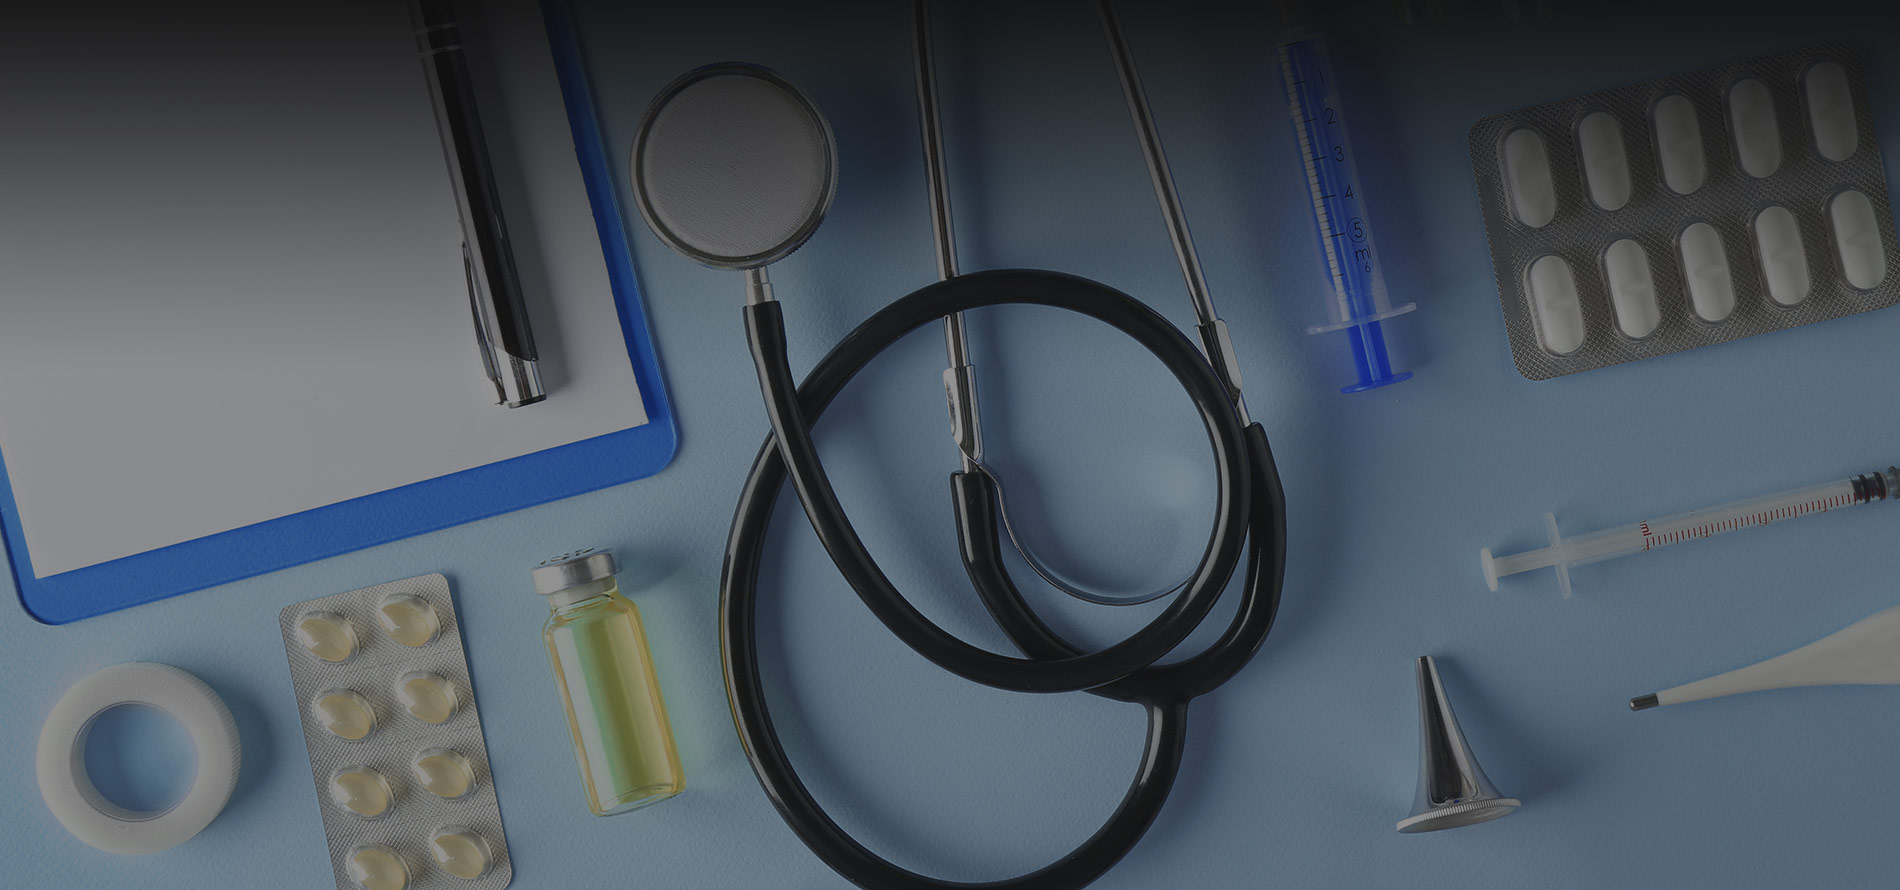 a stethoscope, pills and vials- a medical assistant's tools